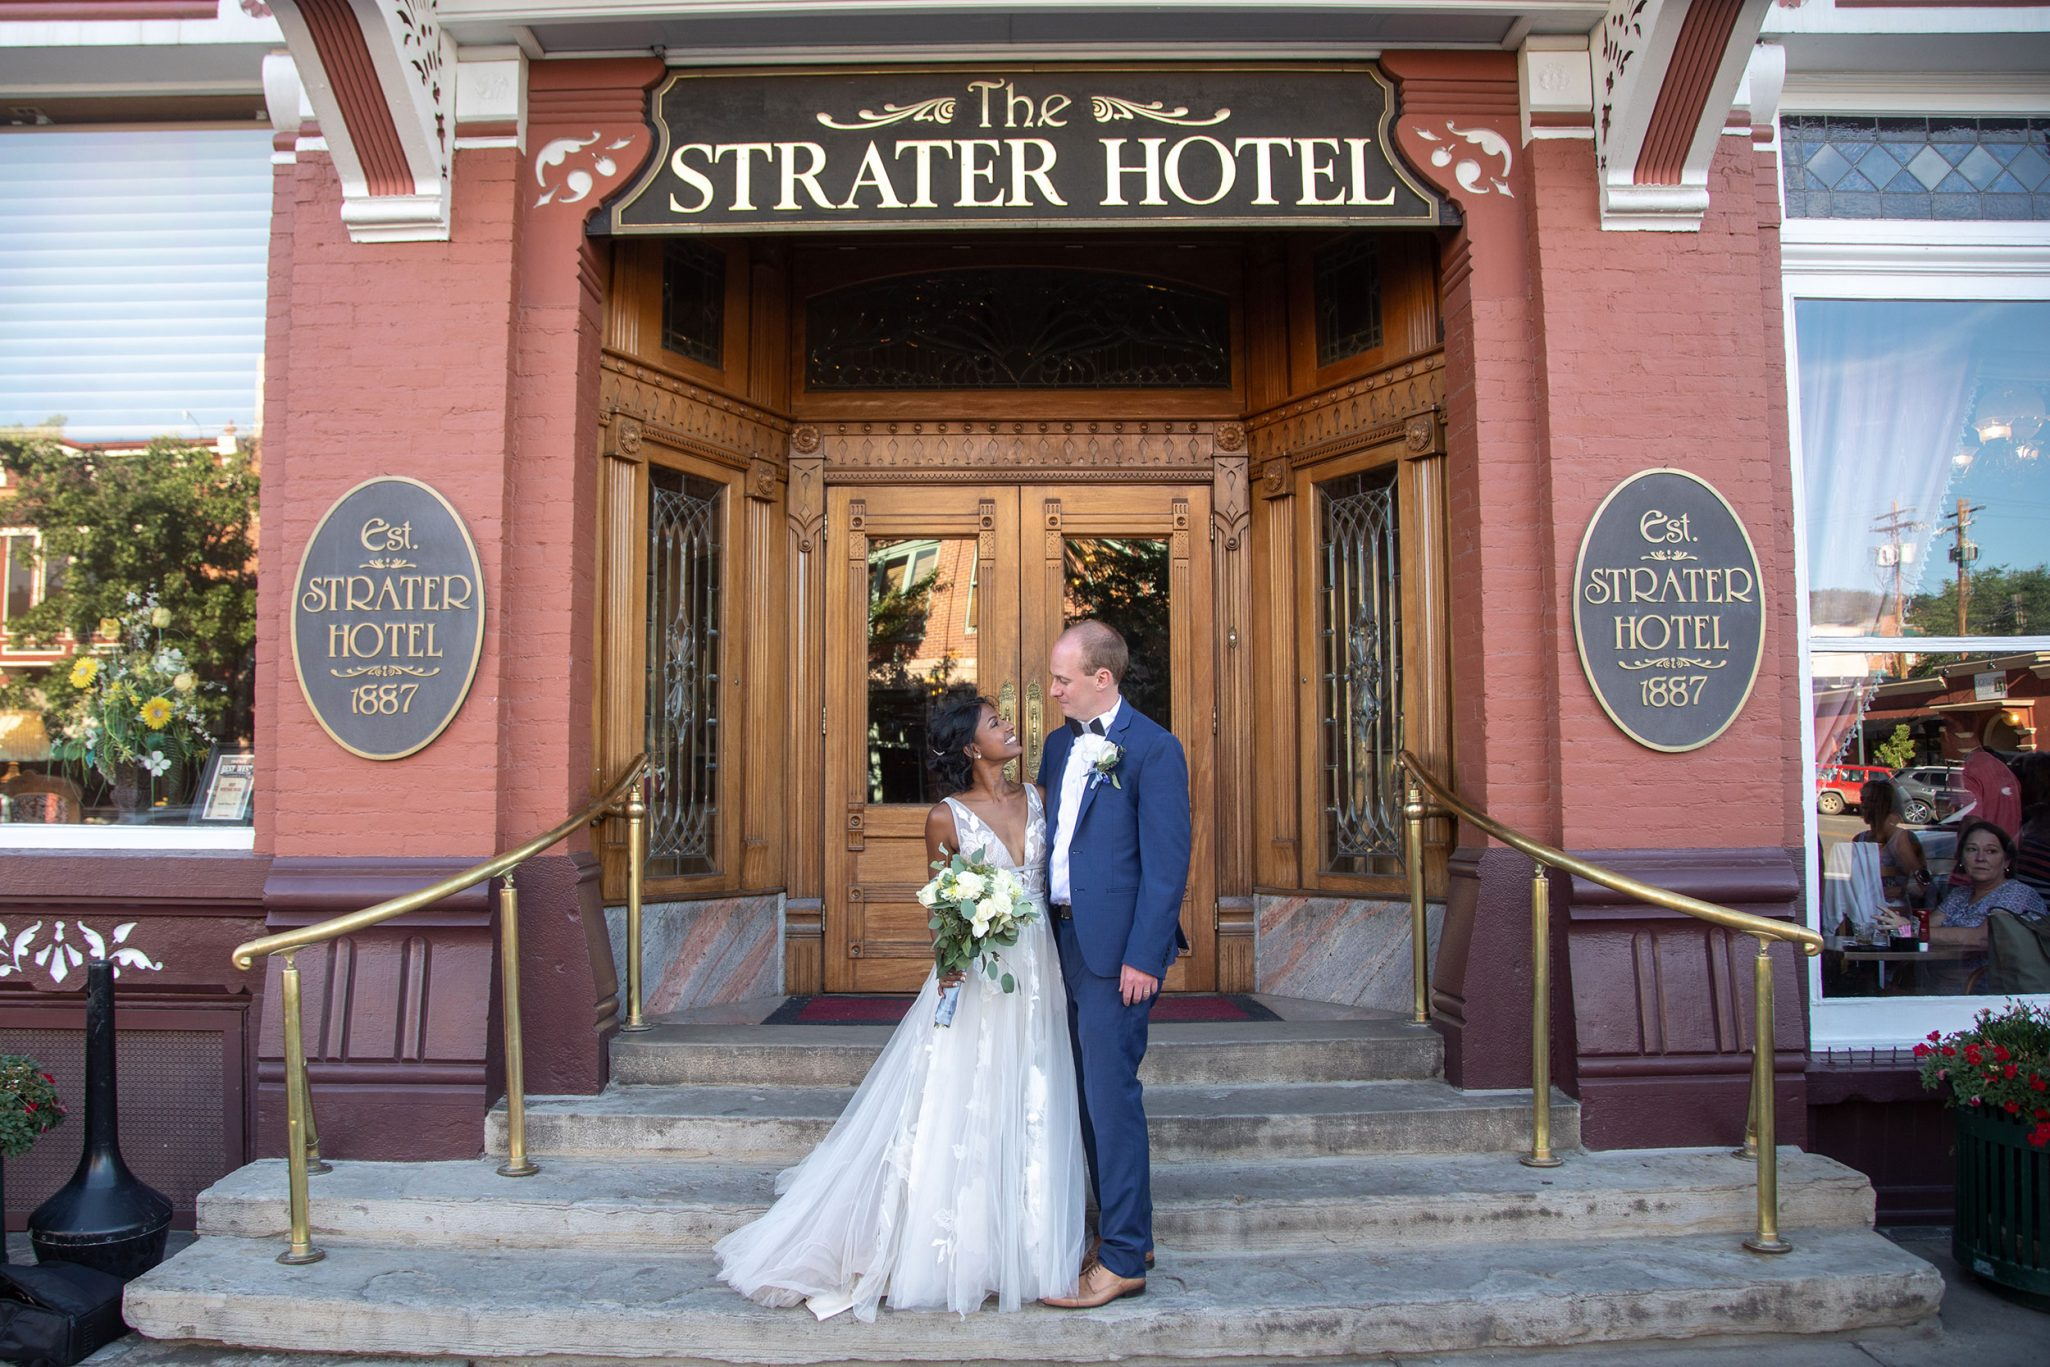 Bride & Groom at the Strater Hotel in downtown Durango, Colorado